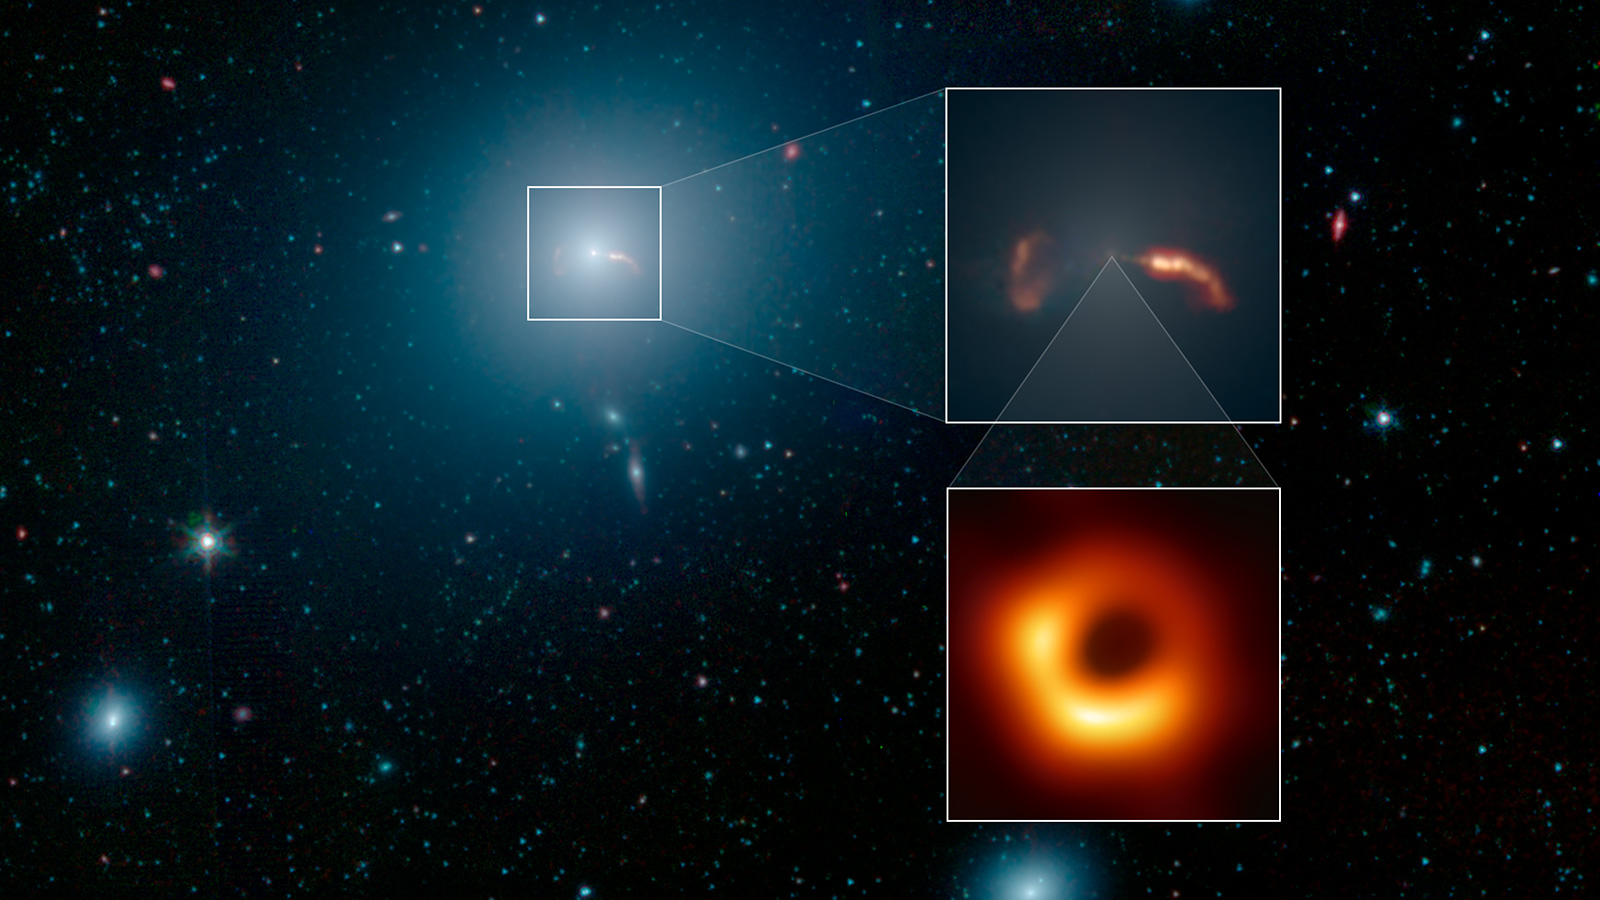 [ASTRONOMIA]   the Galaxy, the Jet, and the Black Hole